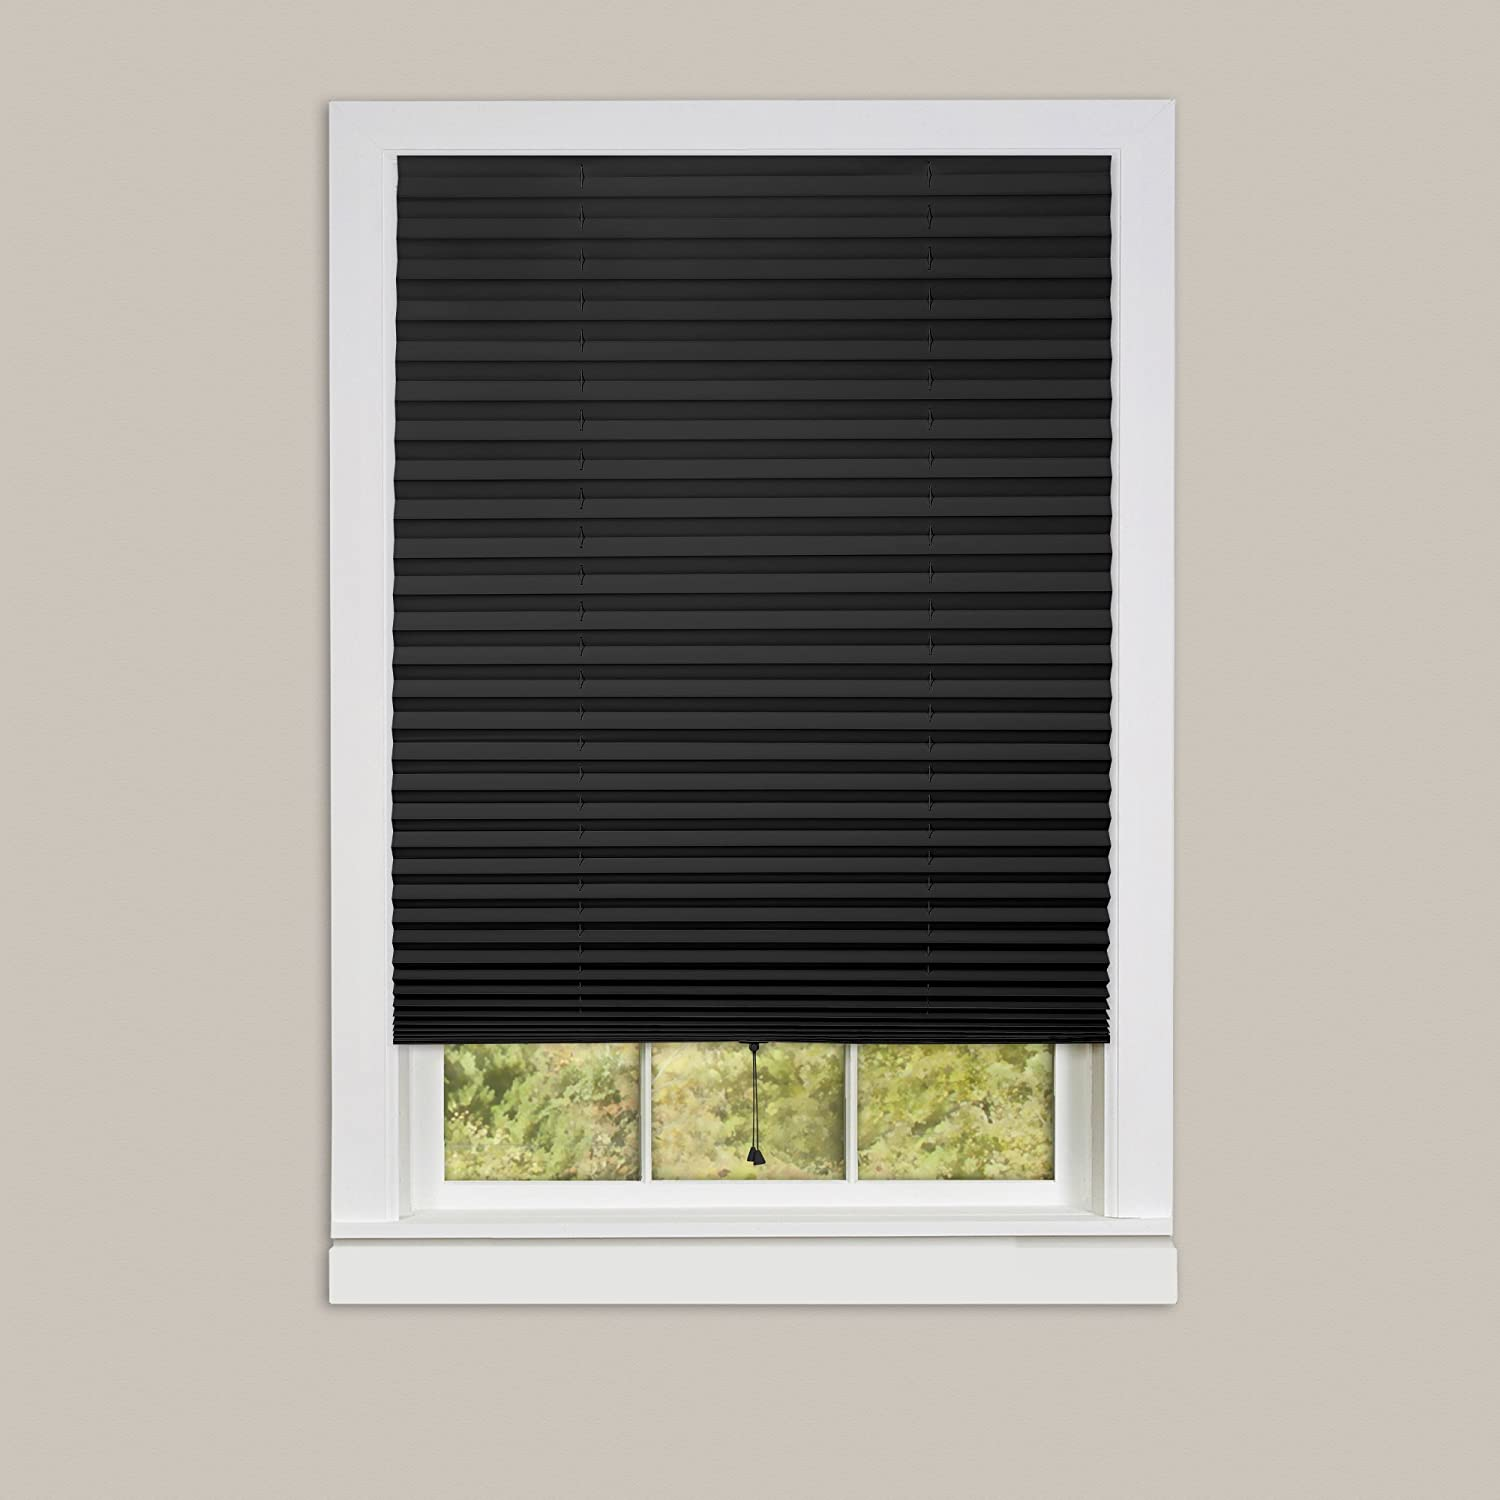 Achim Home Furnishings 1-2-3 Vinyl Room Darkening Temporary Pleated Window Shade